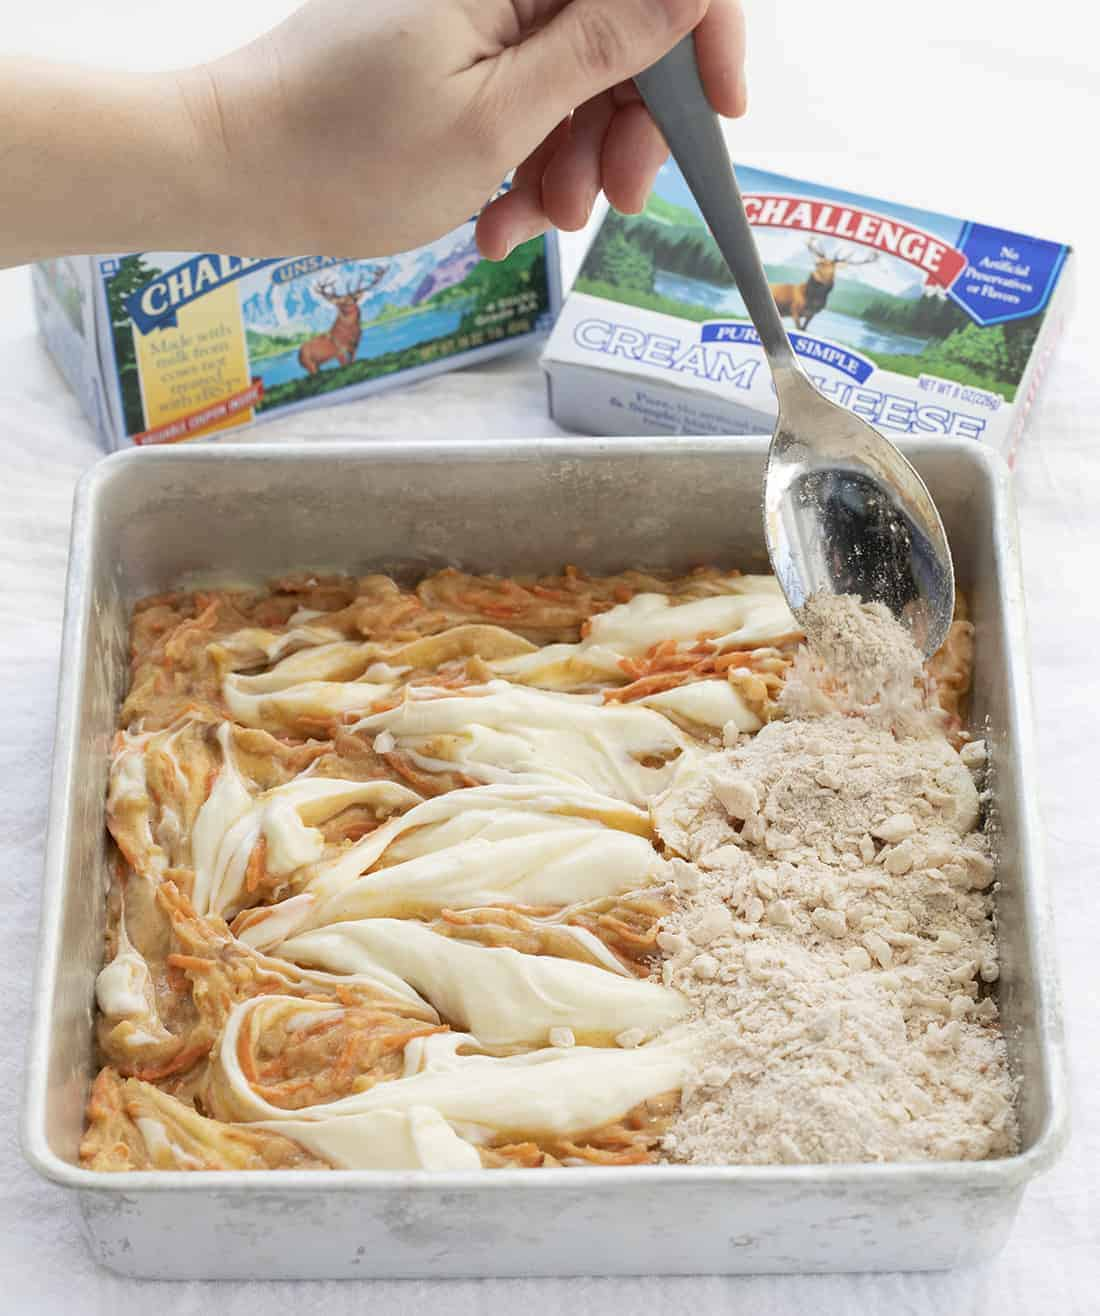 Carrot Cake Bars Being Made in Pan with Challenge Butter Box